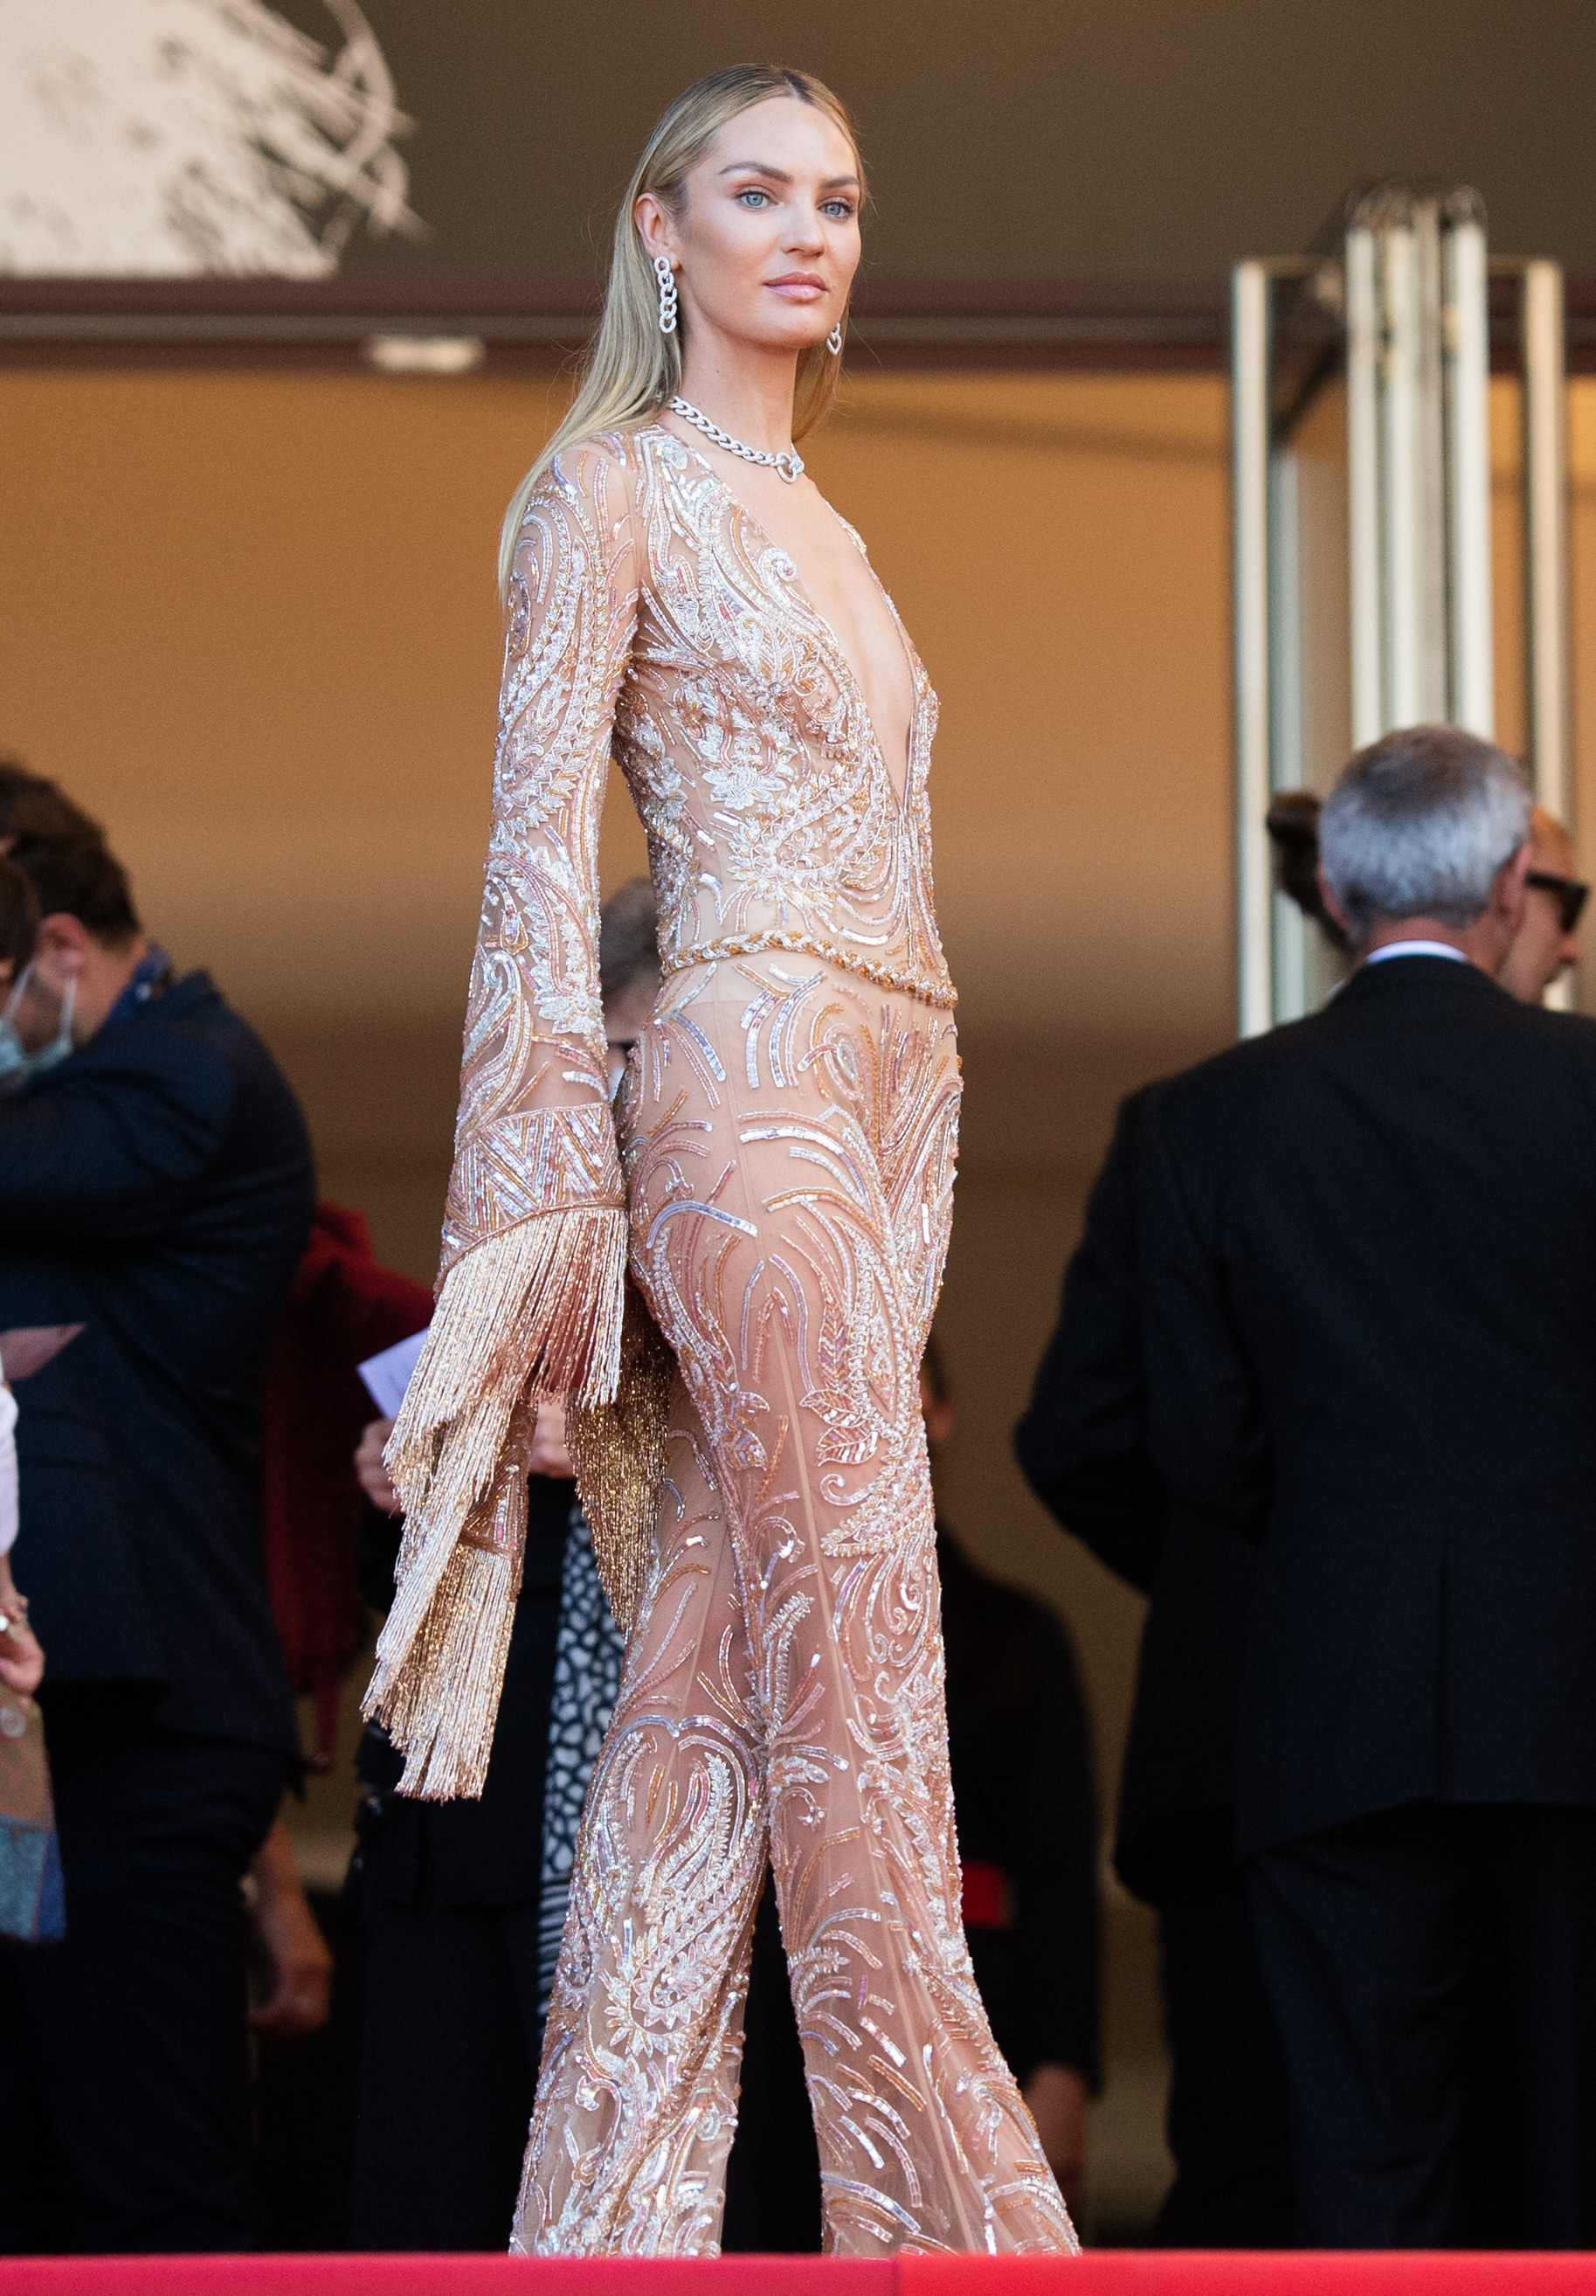 Candice Swanepoel at the Cannes Film Festival